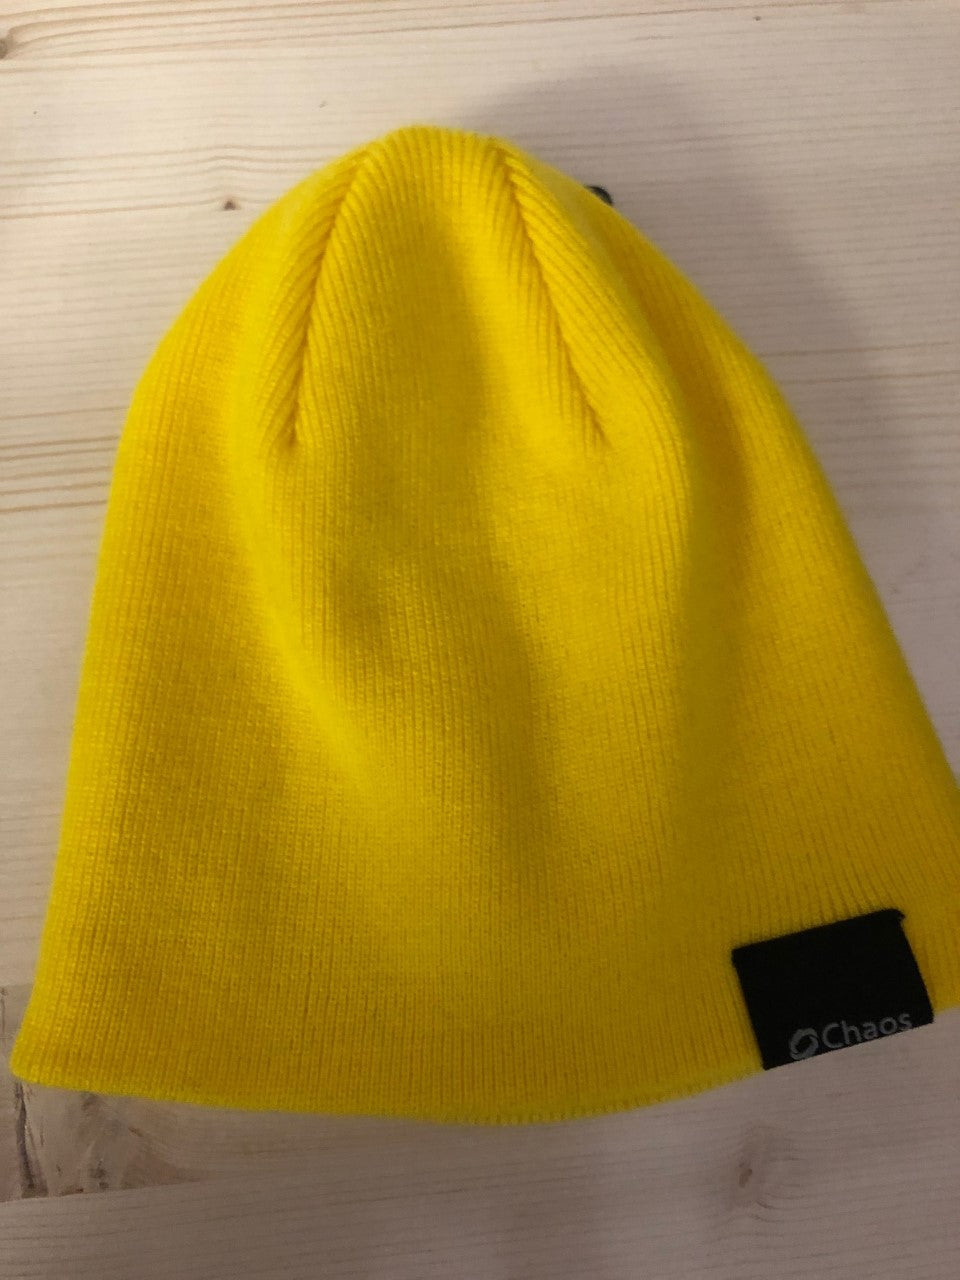 Chaos Yellow Beanie Hat - Lullaby's Boutique